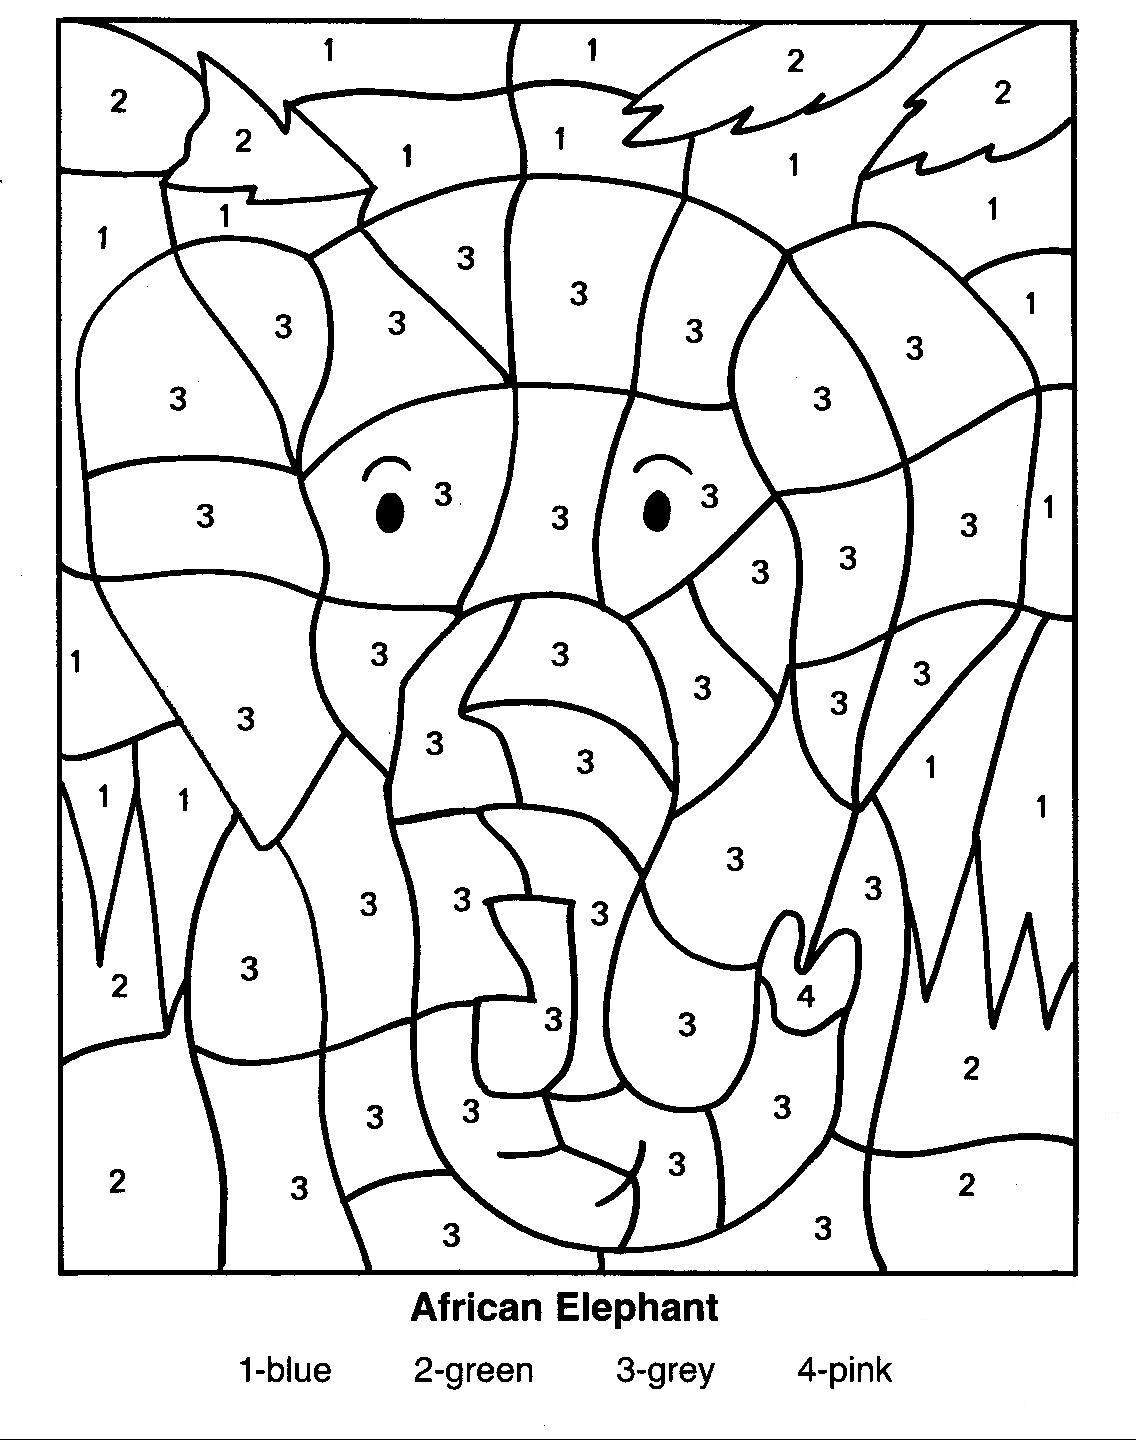 Number Coloring Pages (10) - Coloring Kids